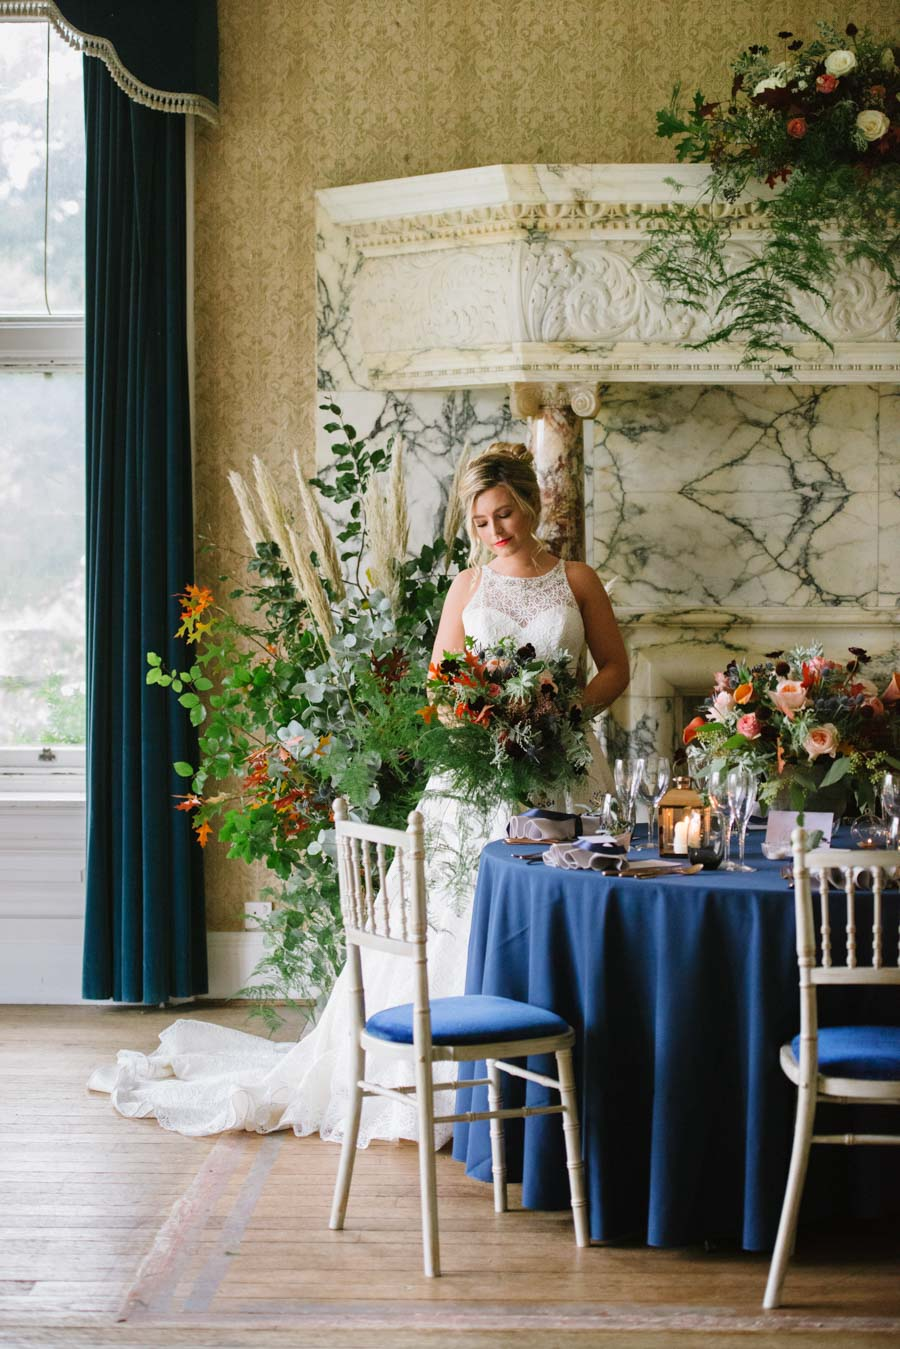 Balcombe Place wedding suppliers Image credit Gosia Grant Photography (2)